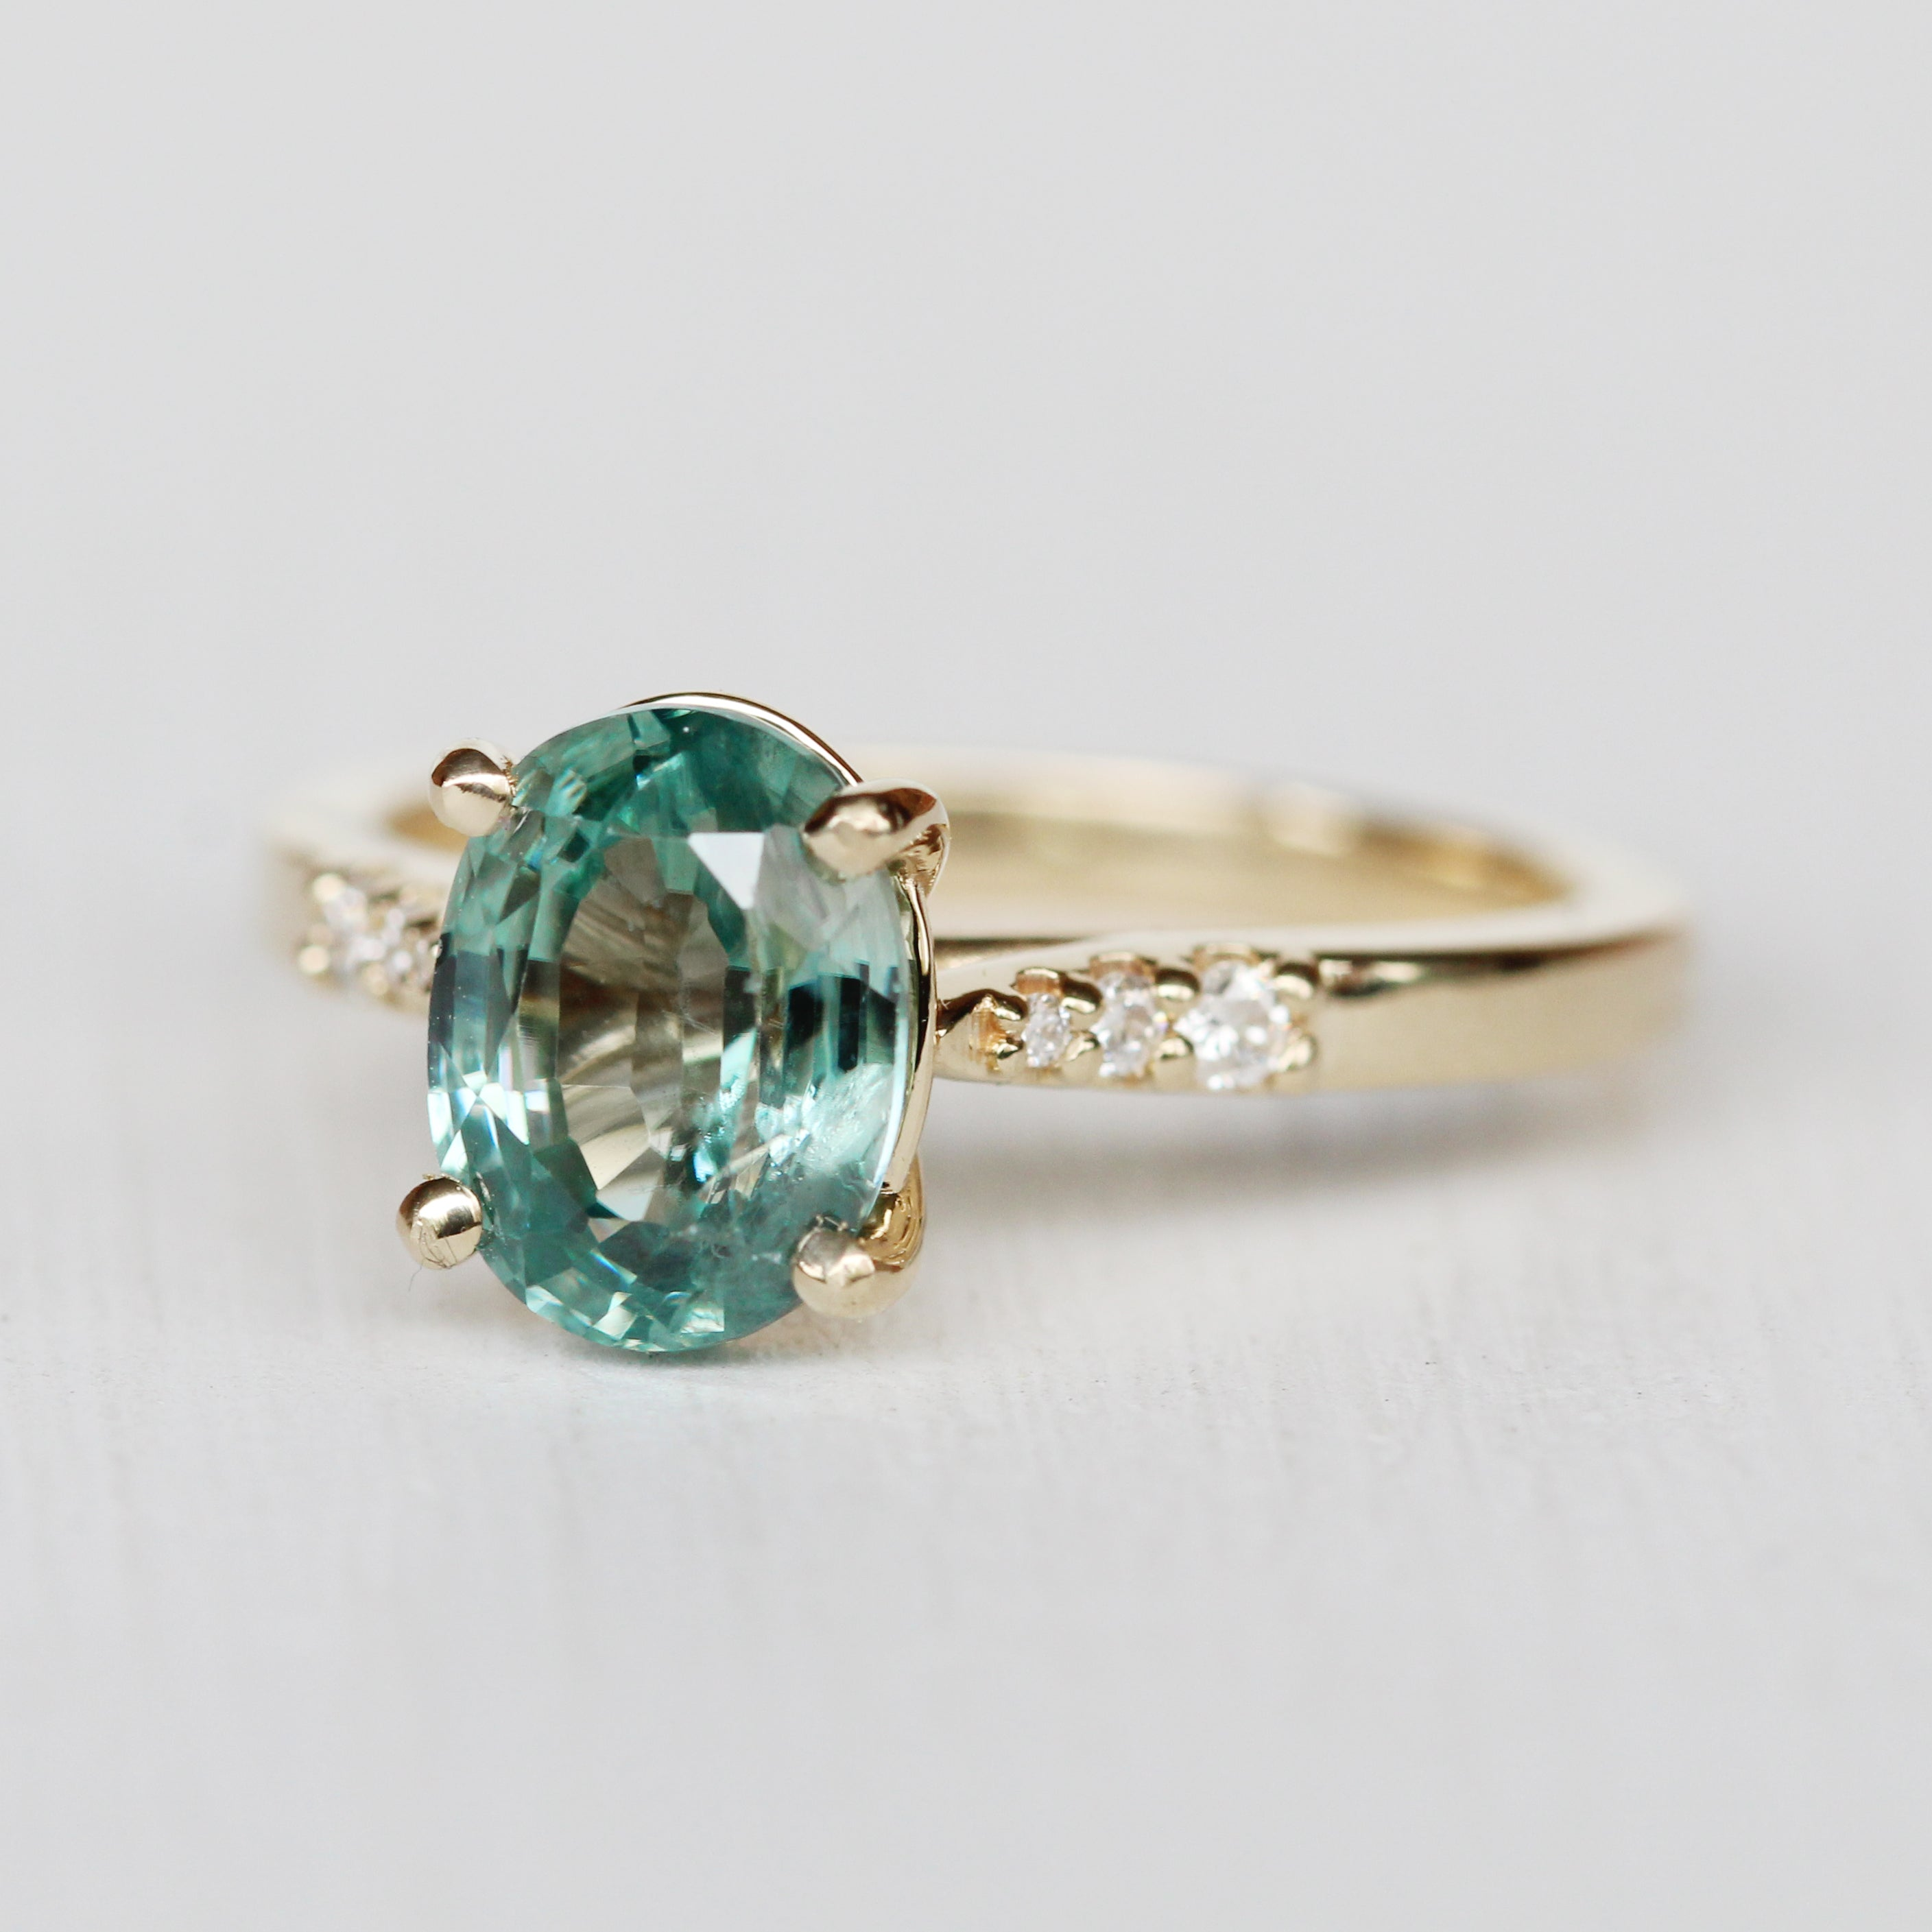 Sloan Ring with a Natural Blue Zircon in 14k Yellow Gold - Ready to Size and Ship